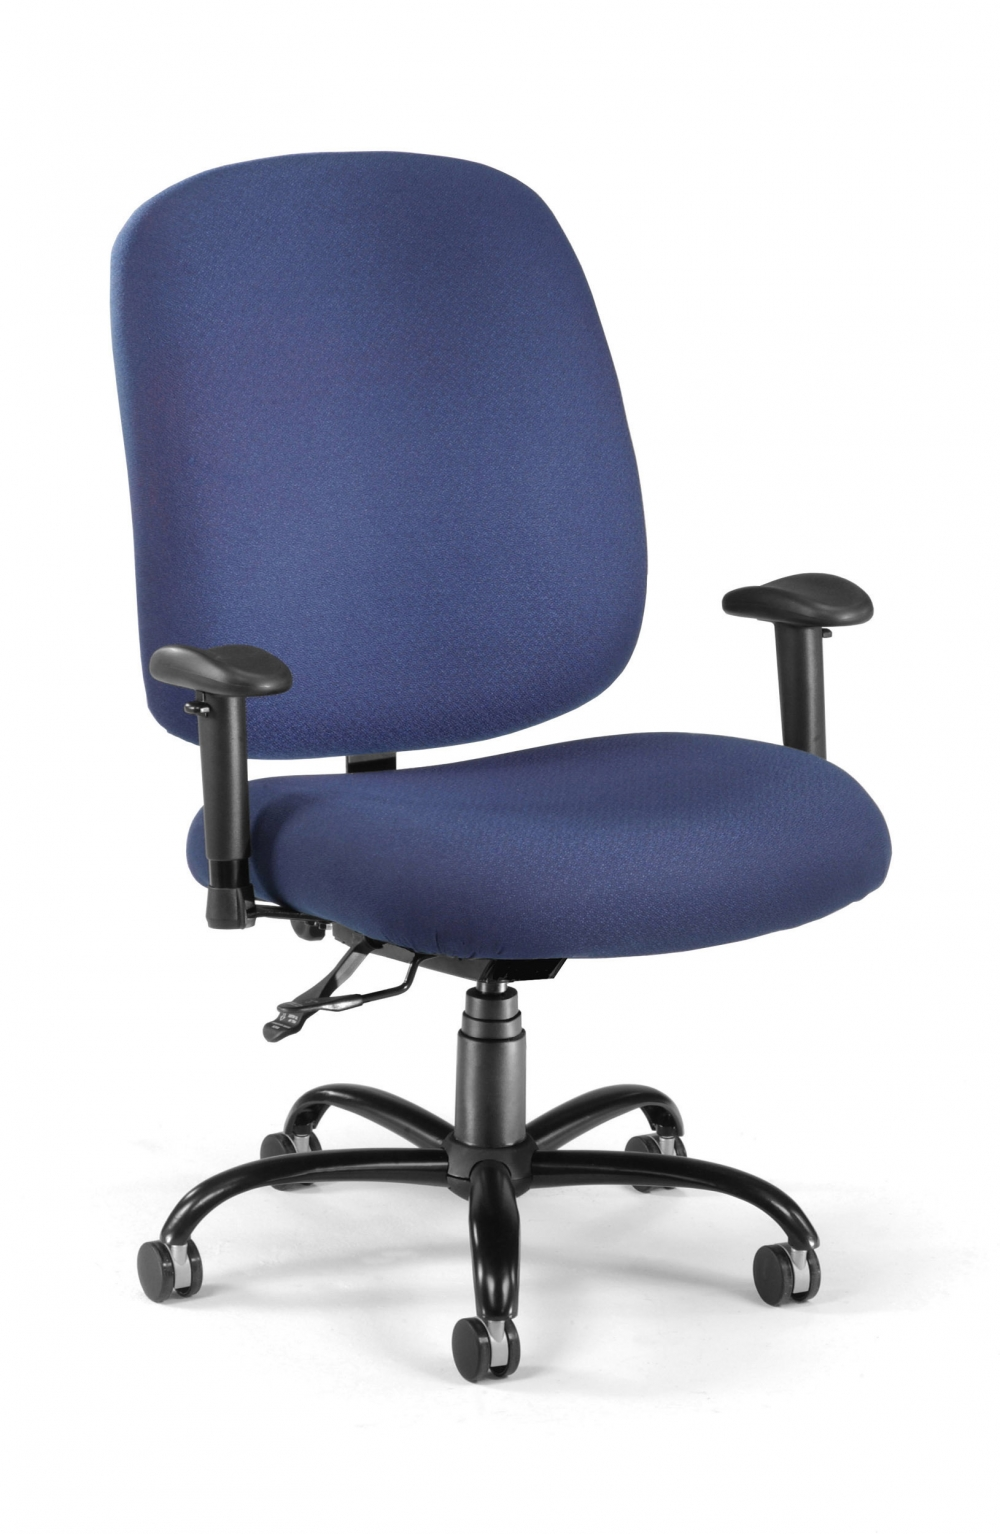 Big and tall desk chairs cub 700 aa6 237 navy mfo